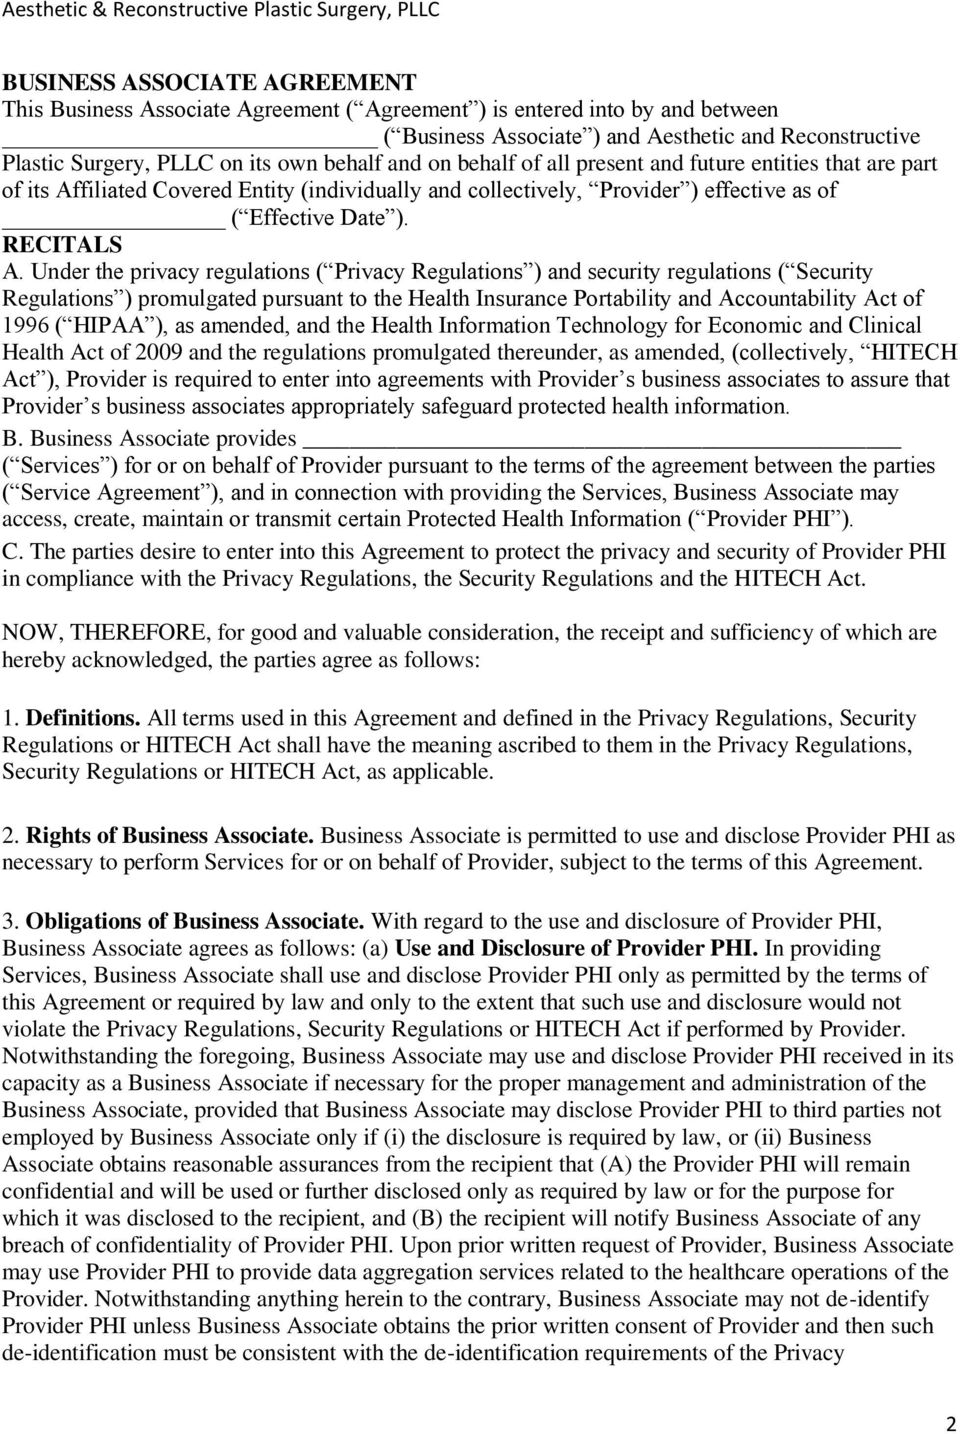 Under the privacy regulations ( Privacy Regulations ) and security regulations ( Security Regulations ) promulgated pursuant to the Health Insurance Portability and Accountability Act of 1996 ( HIPAA